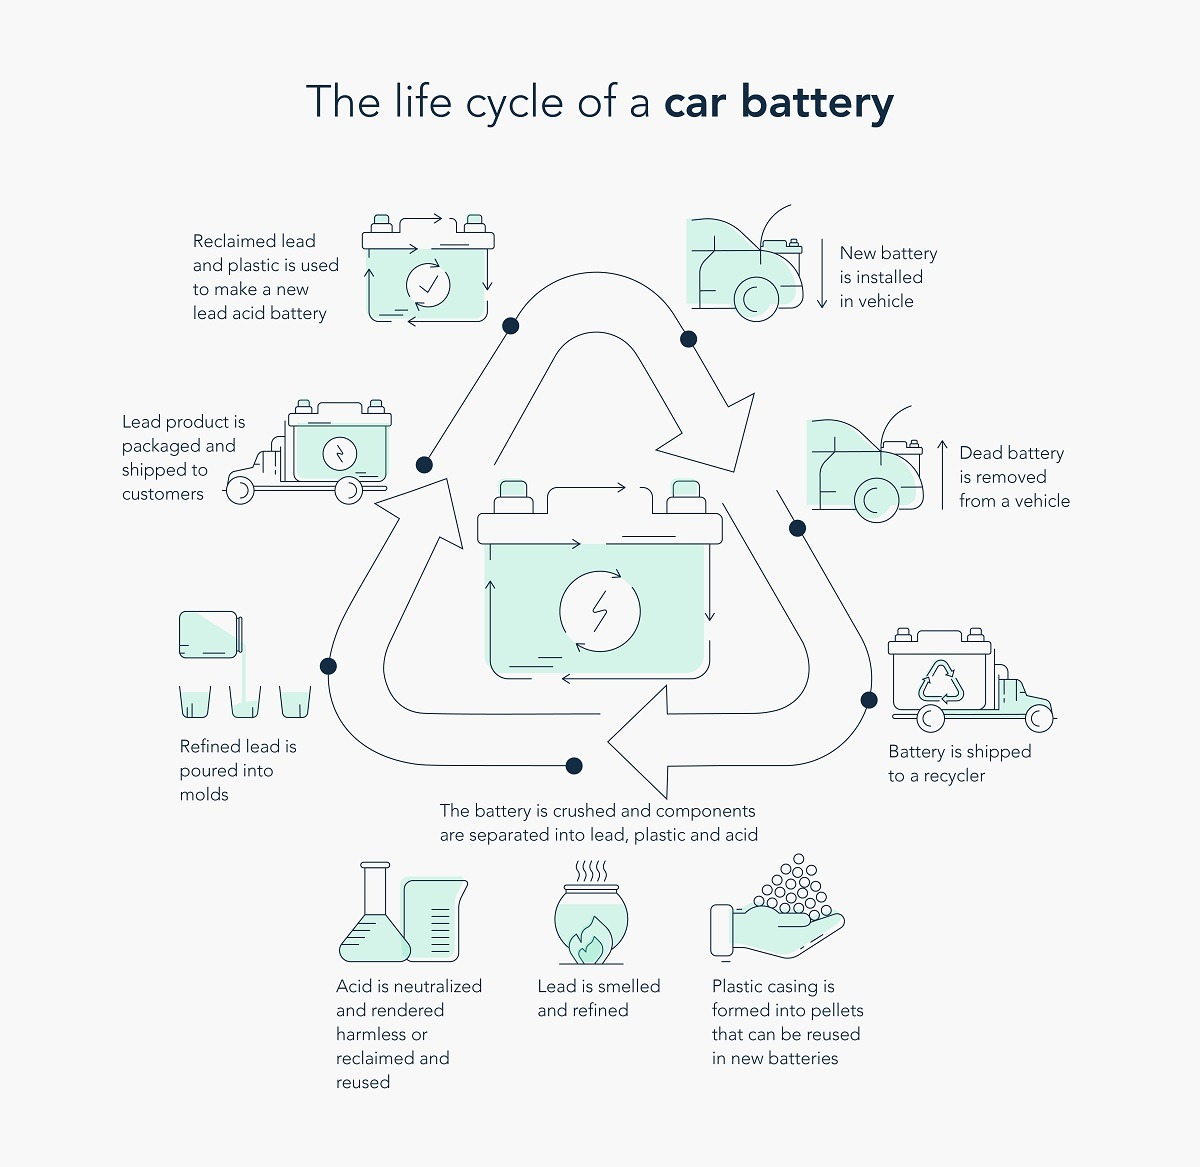 The lifecycle of a car battery